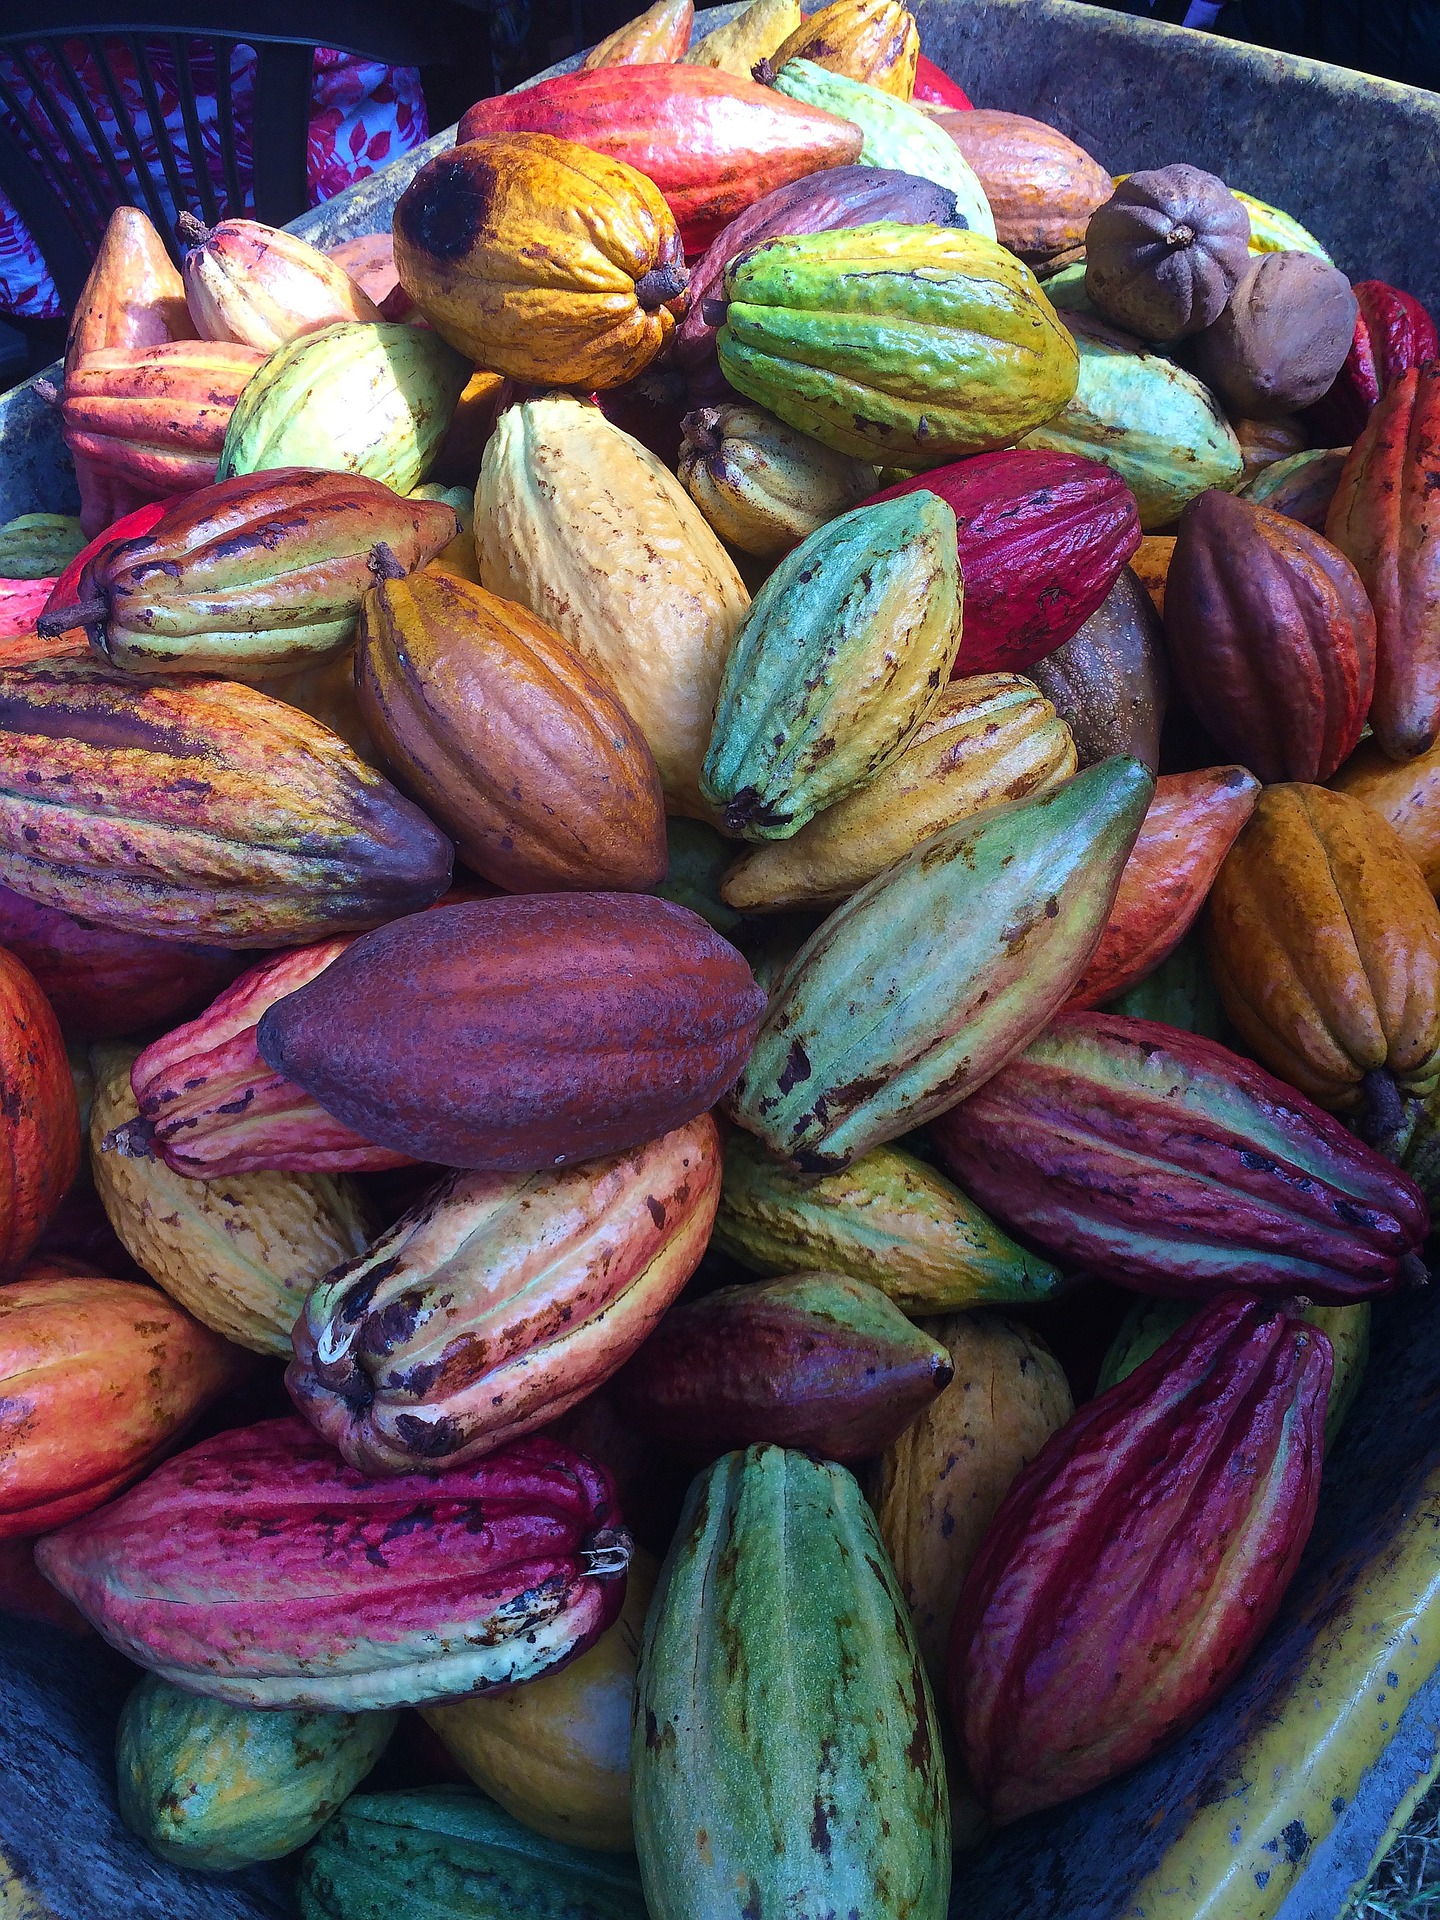 Improving cacao farming techniques set to offer major sector breakthrough